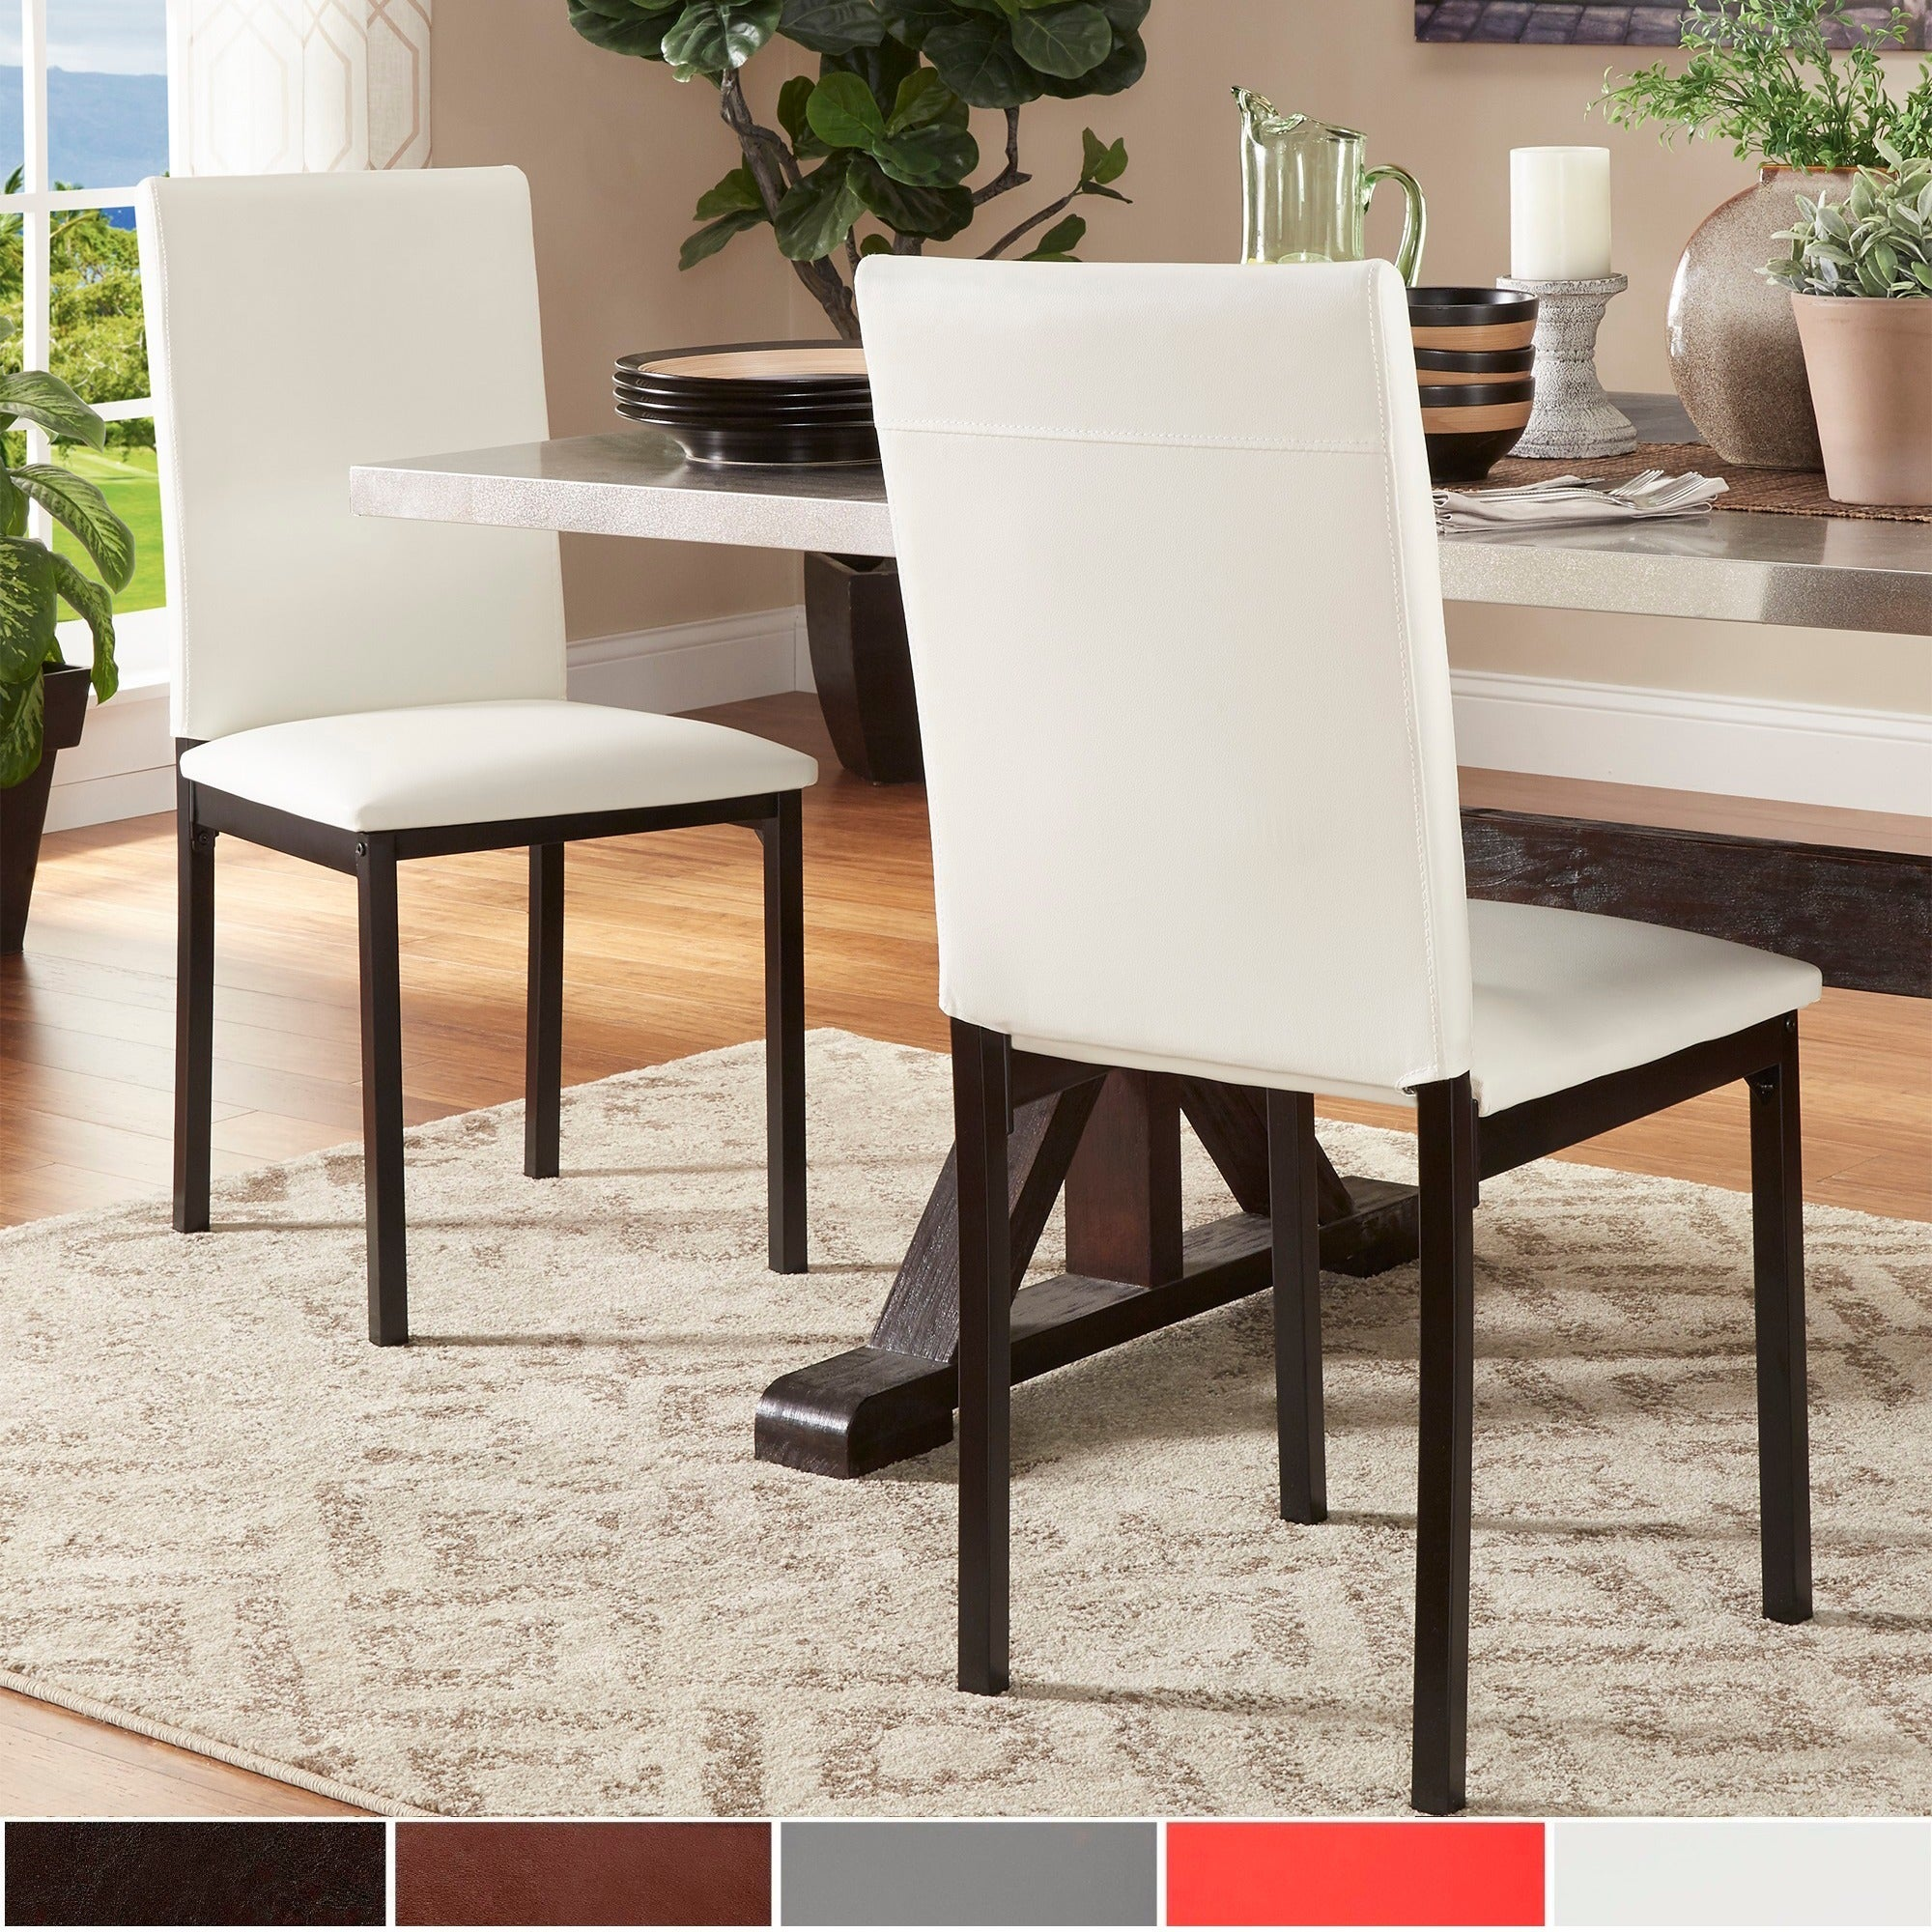 Darcy Espresso Metal Upholstered Dining Chair by iNSPIRE Q Bold (Set of 2)  - Free Shipping Today - Overstock.com - 17494102